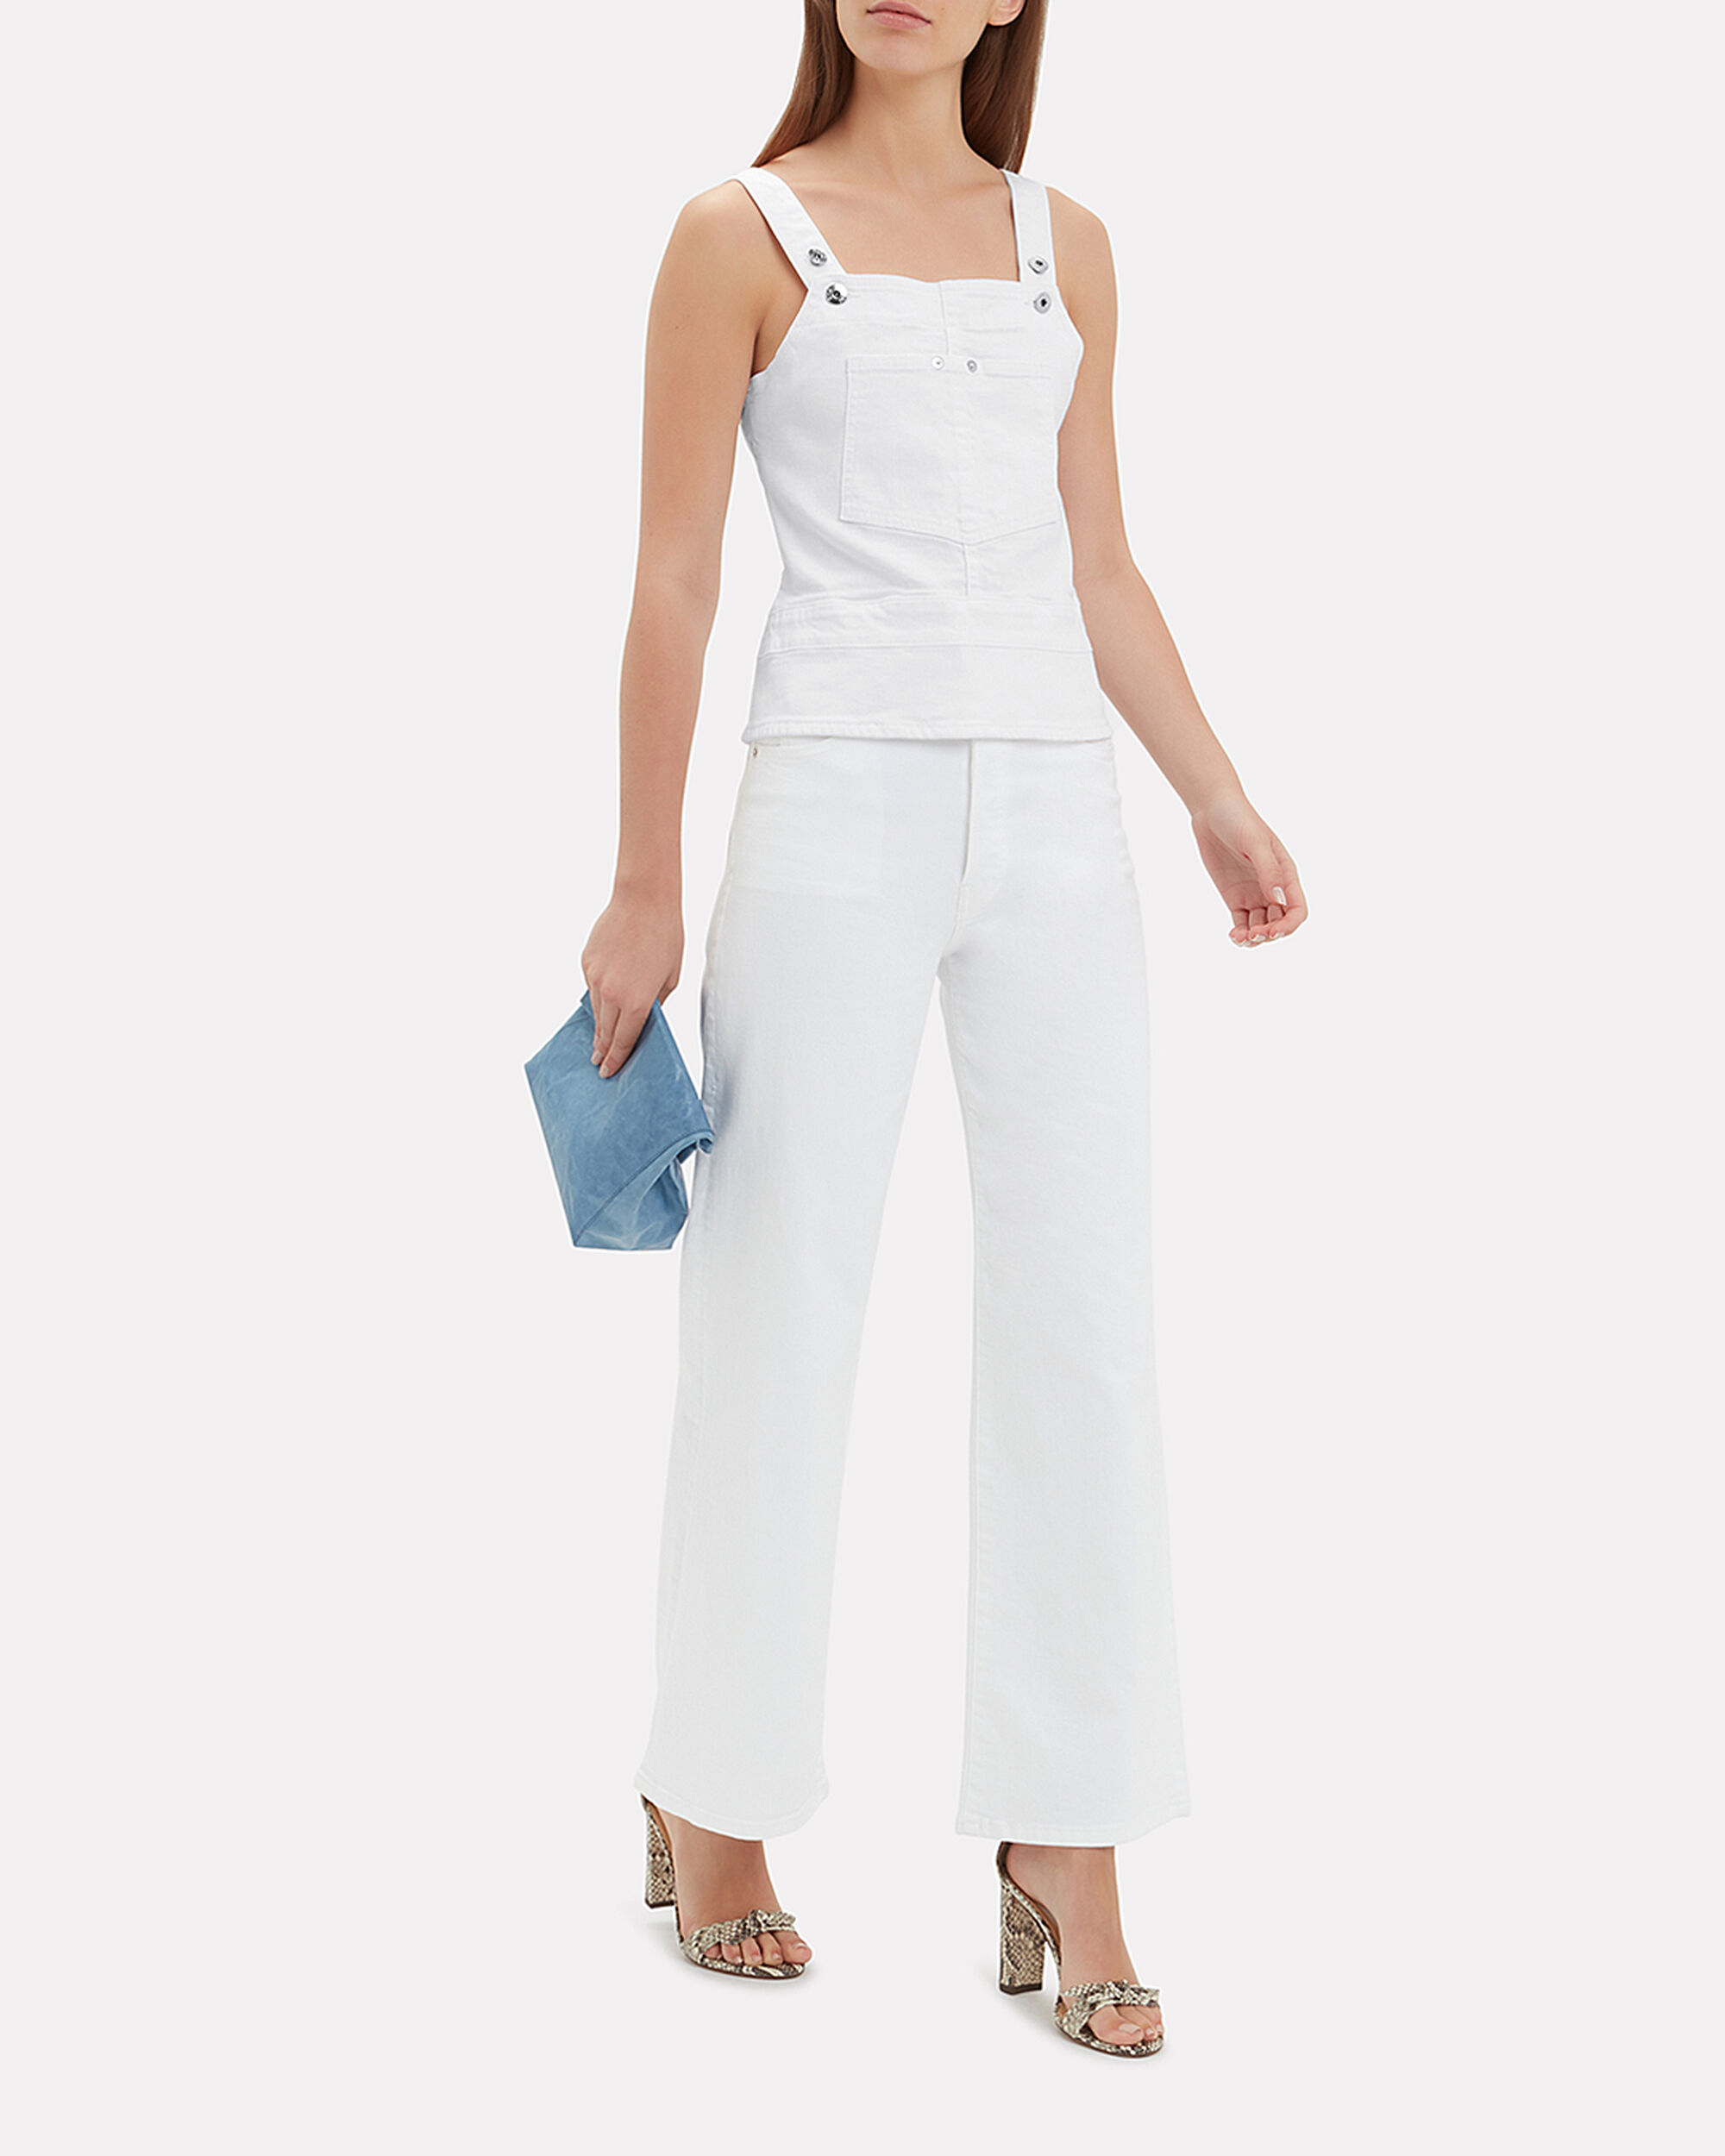 Clara White Denim Top, WHITE, hi-res